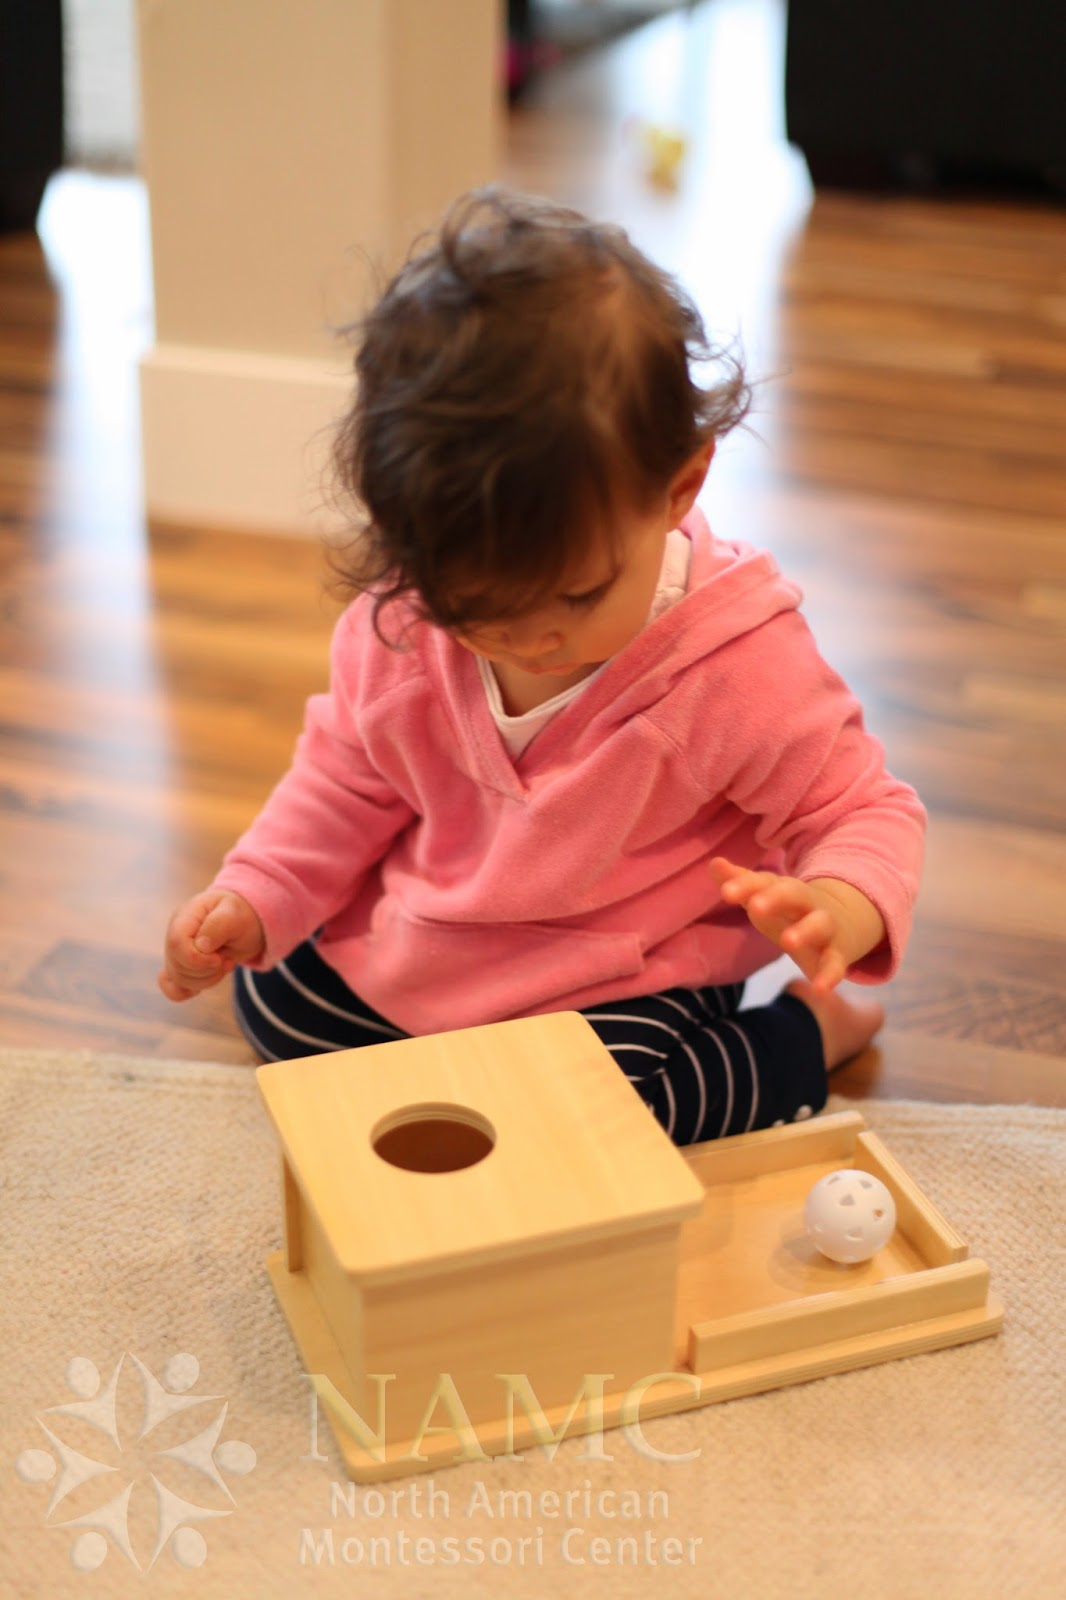 Developing Object Permanence Skills In The Montessori